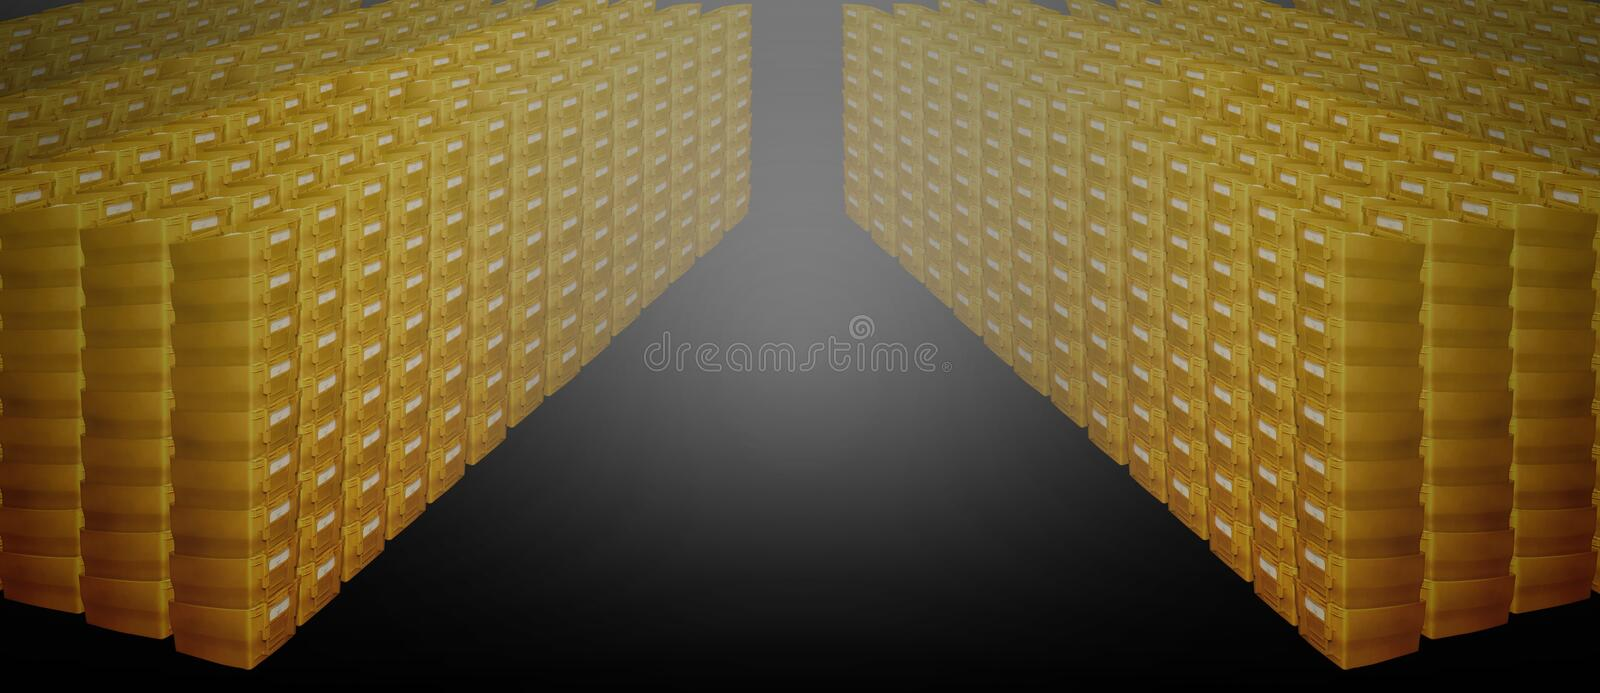 Mailboxes many pile row stack postal german yellow container royalty free stock photo